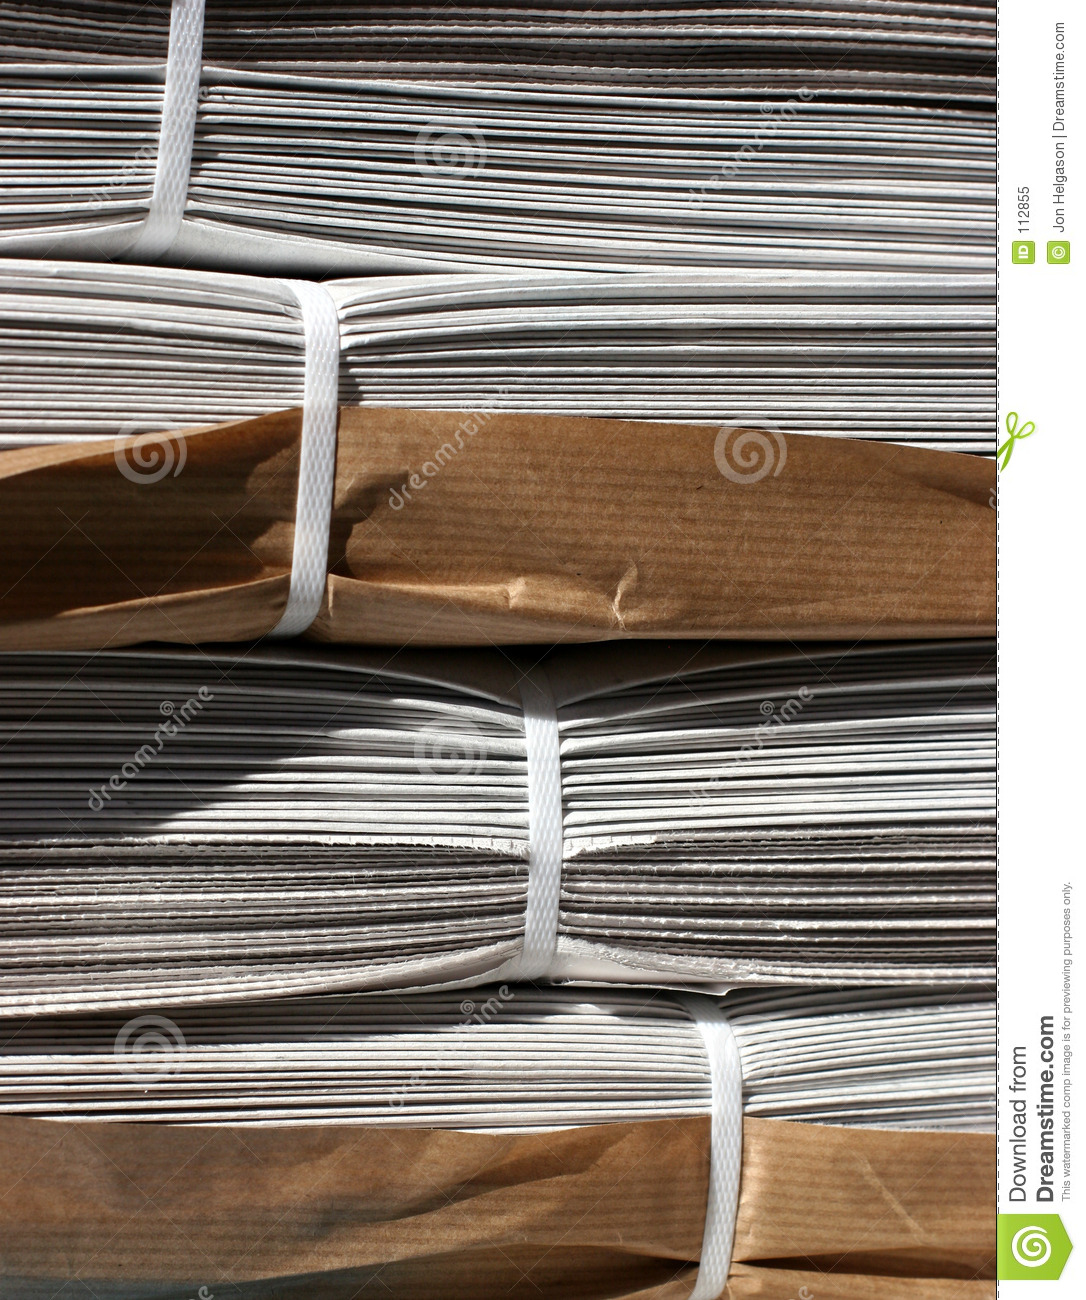 Download Stack of newspapers stock image. Image of information, news - 112855